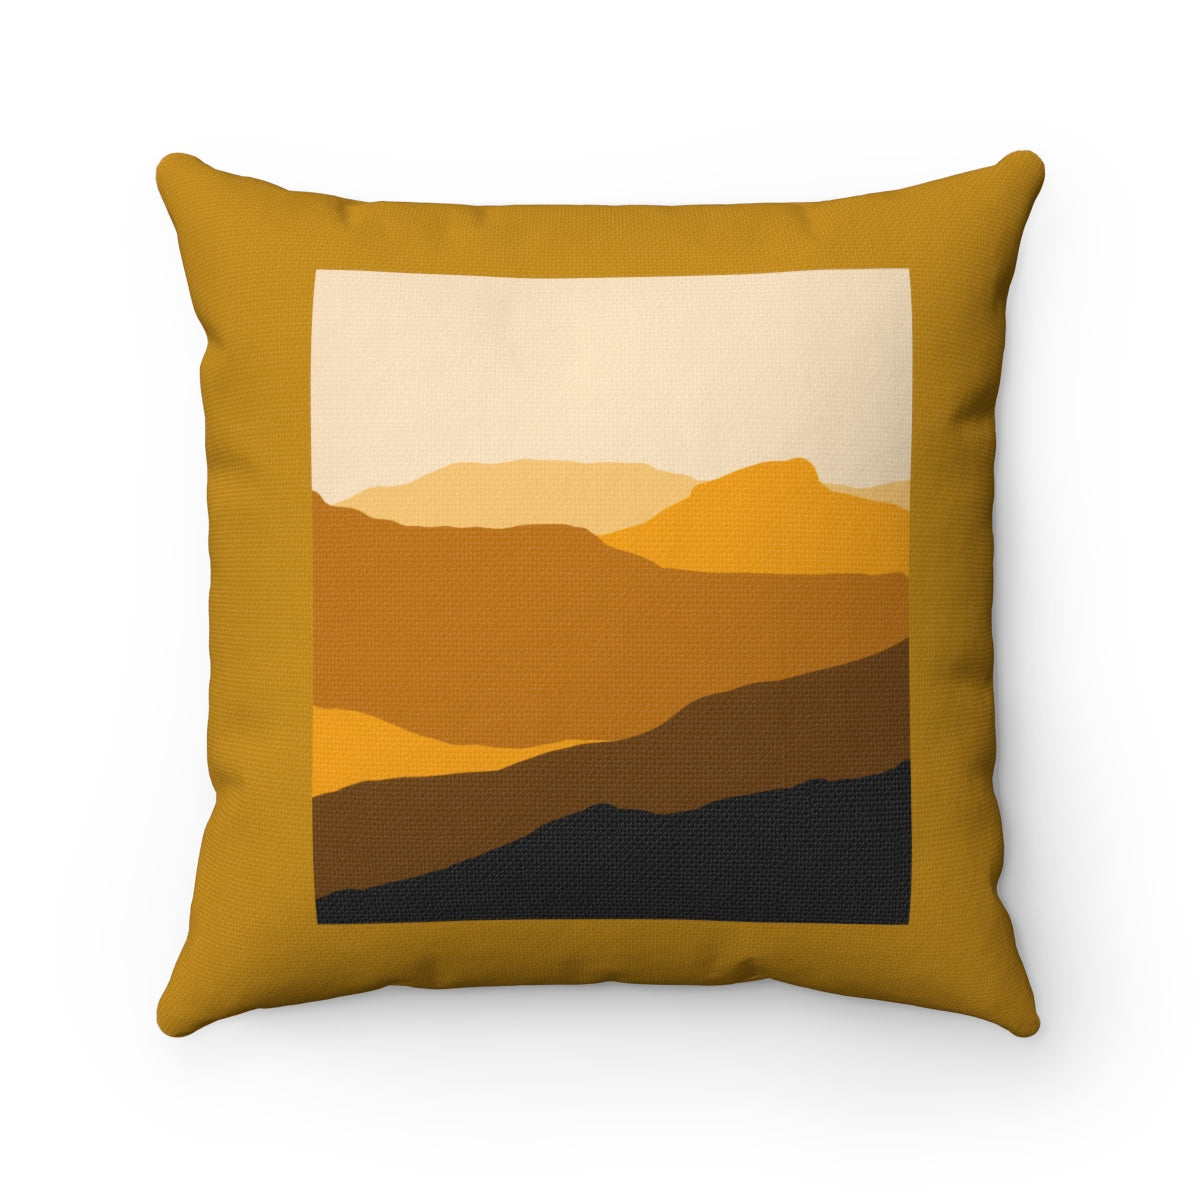 Pillow - Sand Hills - Brown Spun Polyester Square Pillow - Falling Leaf Card Co.